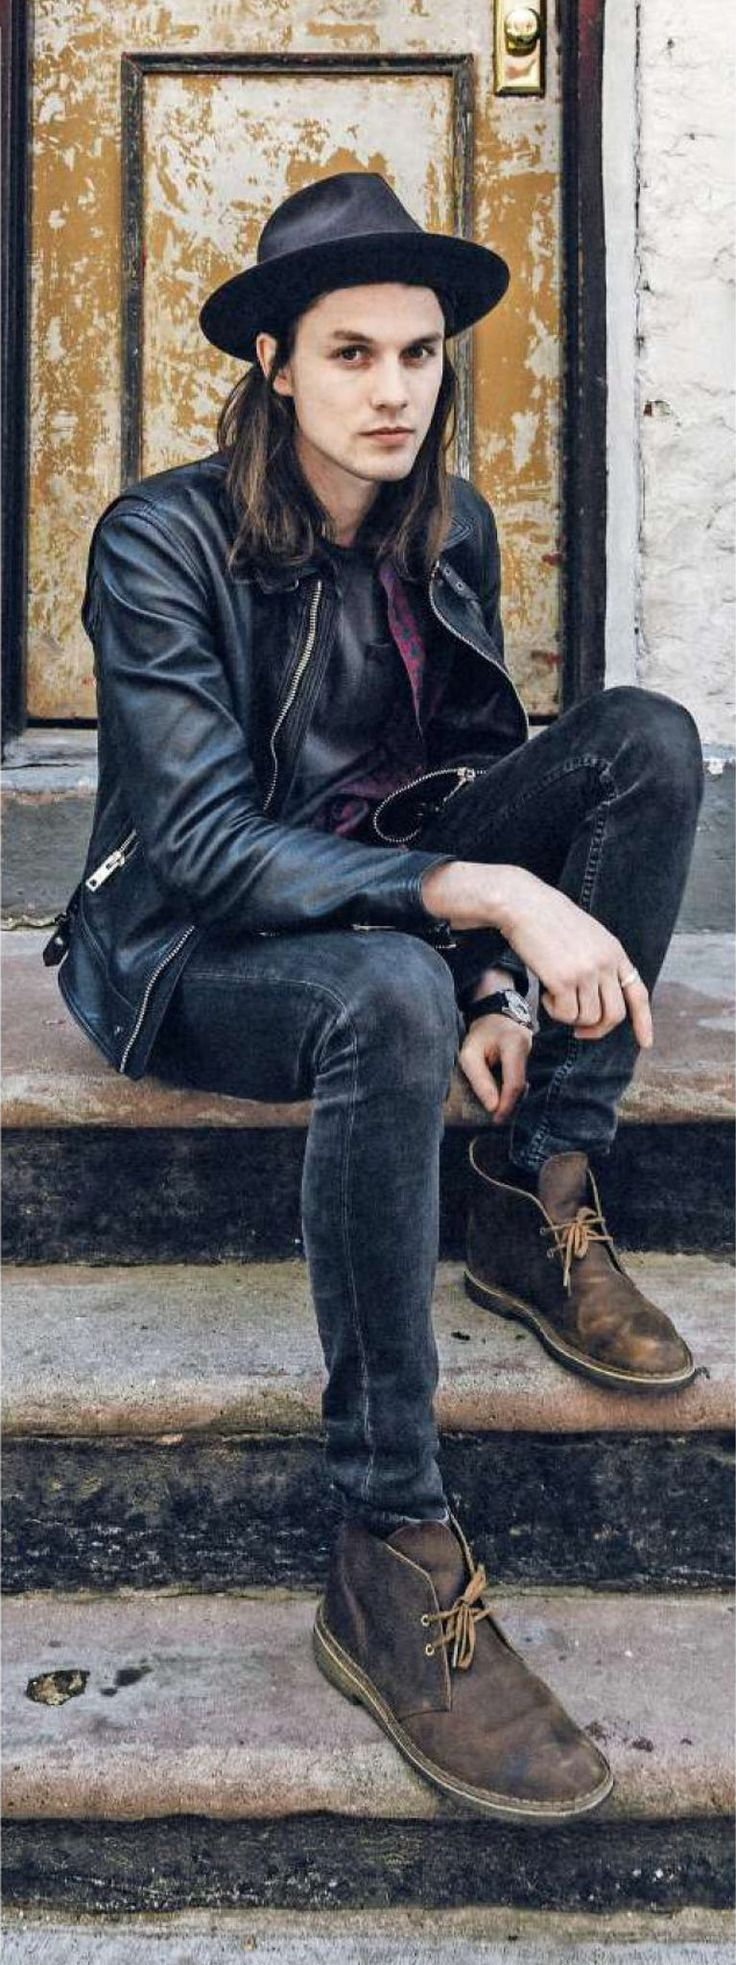 https://flic.kr/p/FyfkzH | James Bay - P082 - Q Magazine 2016-11-xx | James Bay - P082 - Q Magazine 2016-11-xx